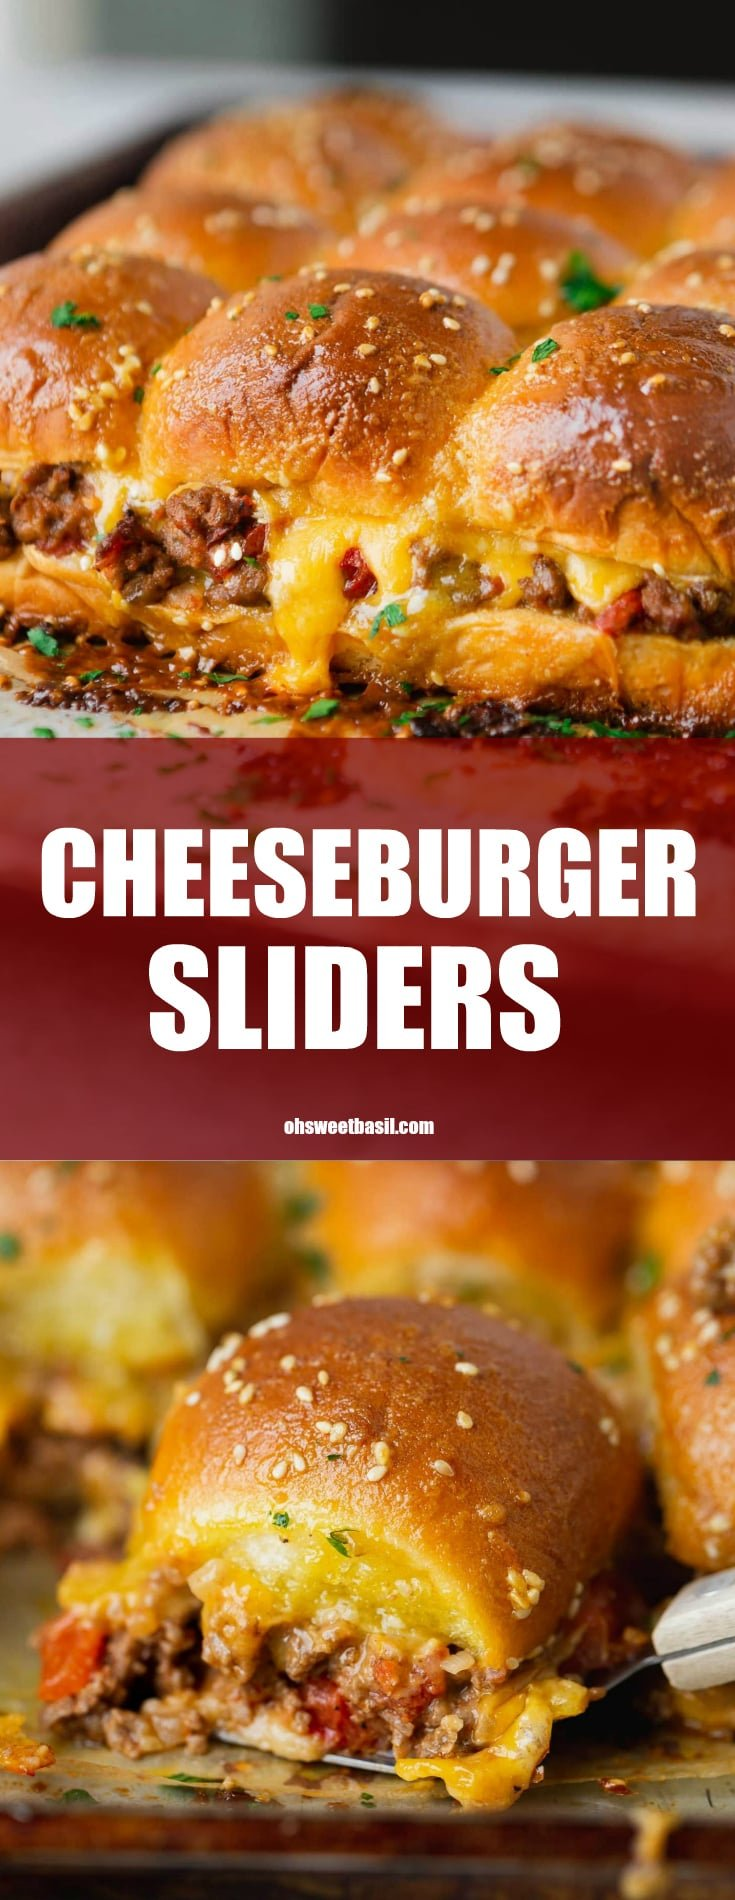 A panful of cheeseburger sliders. The cheese is oozing from the rolls and you can see ground beef and chunks of tomatoes.